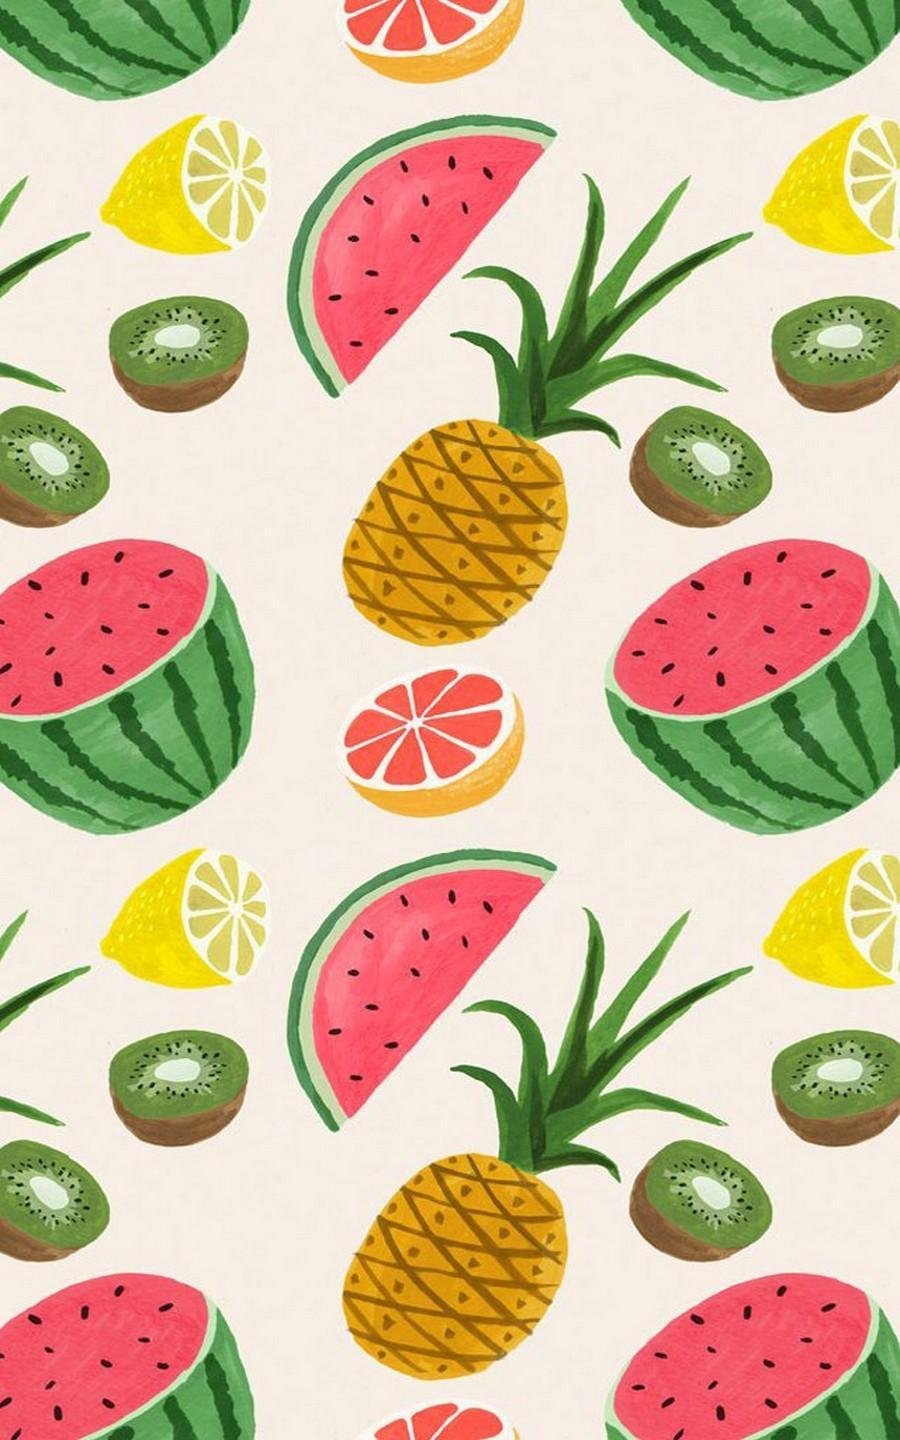 Cute Pineapple Wallpapers para Android - APK Descargar